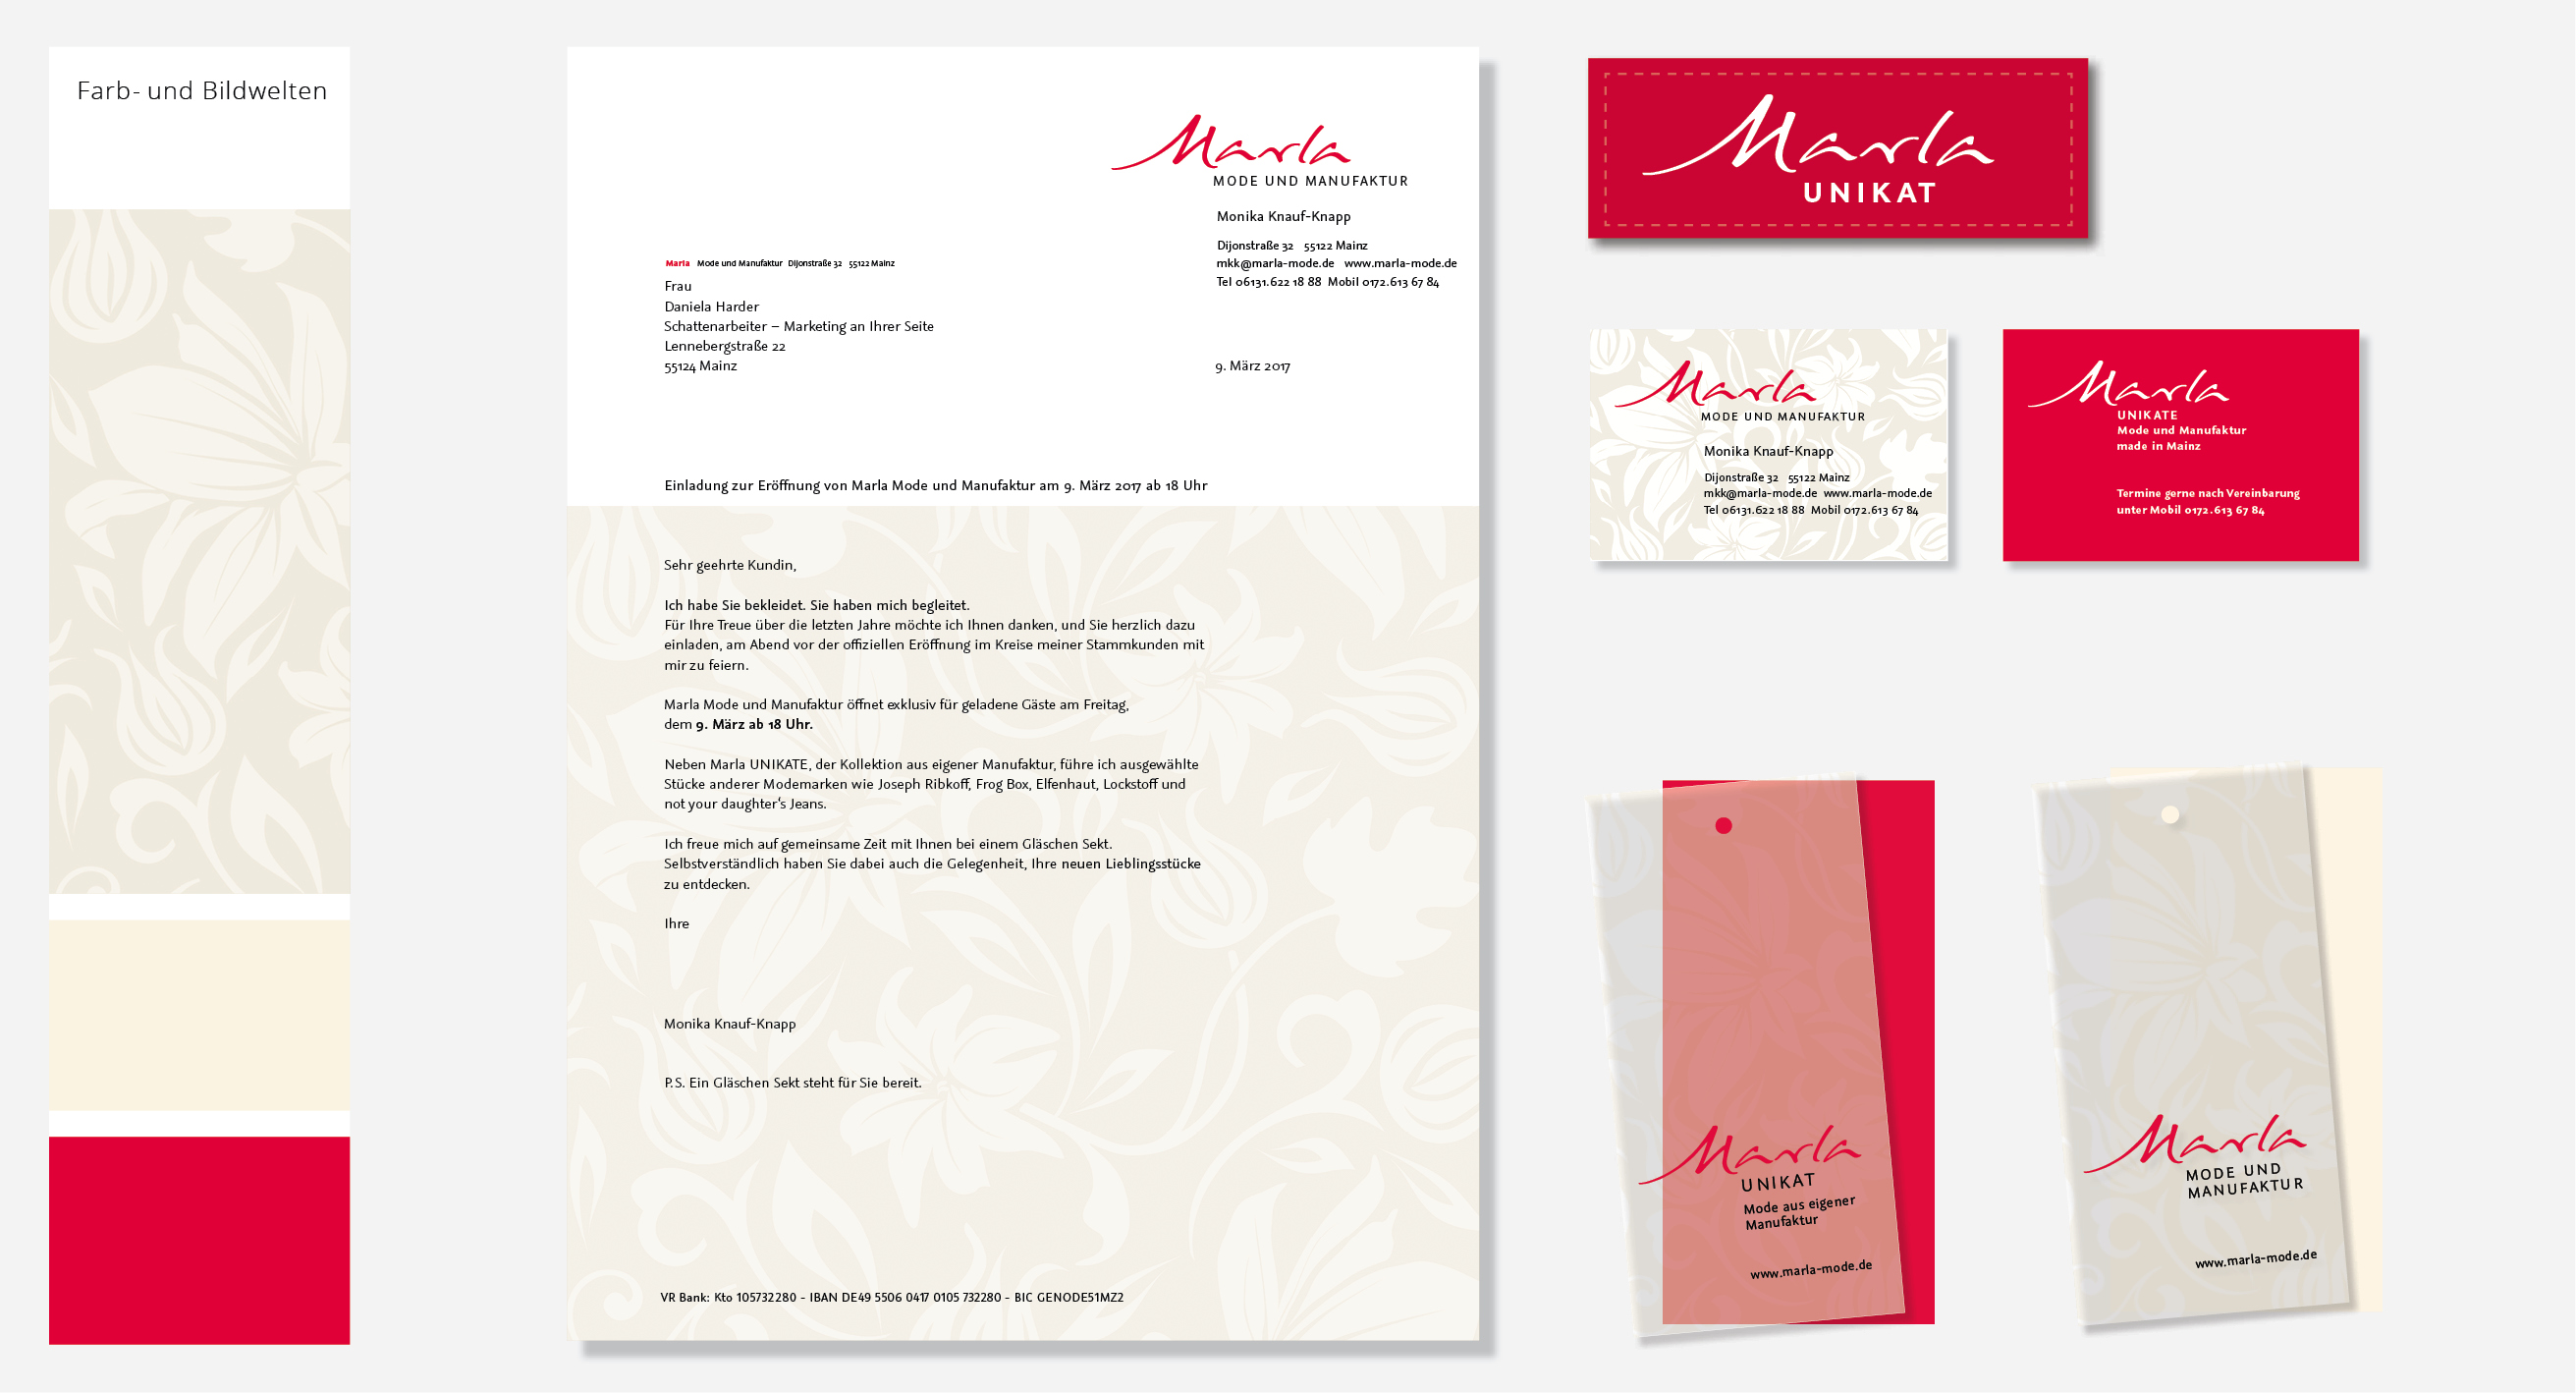 rau-corporate-design-marla